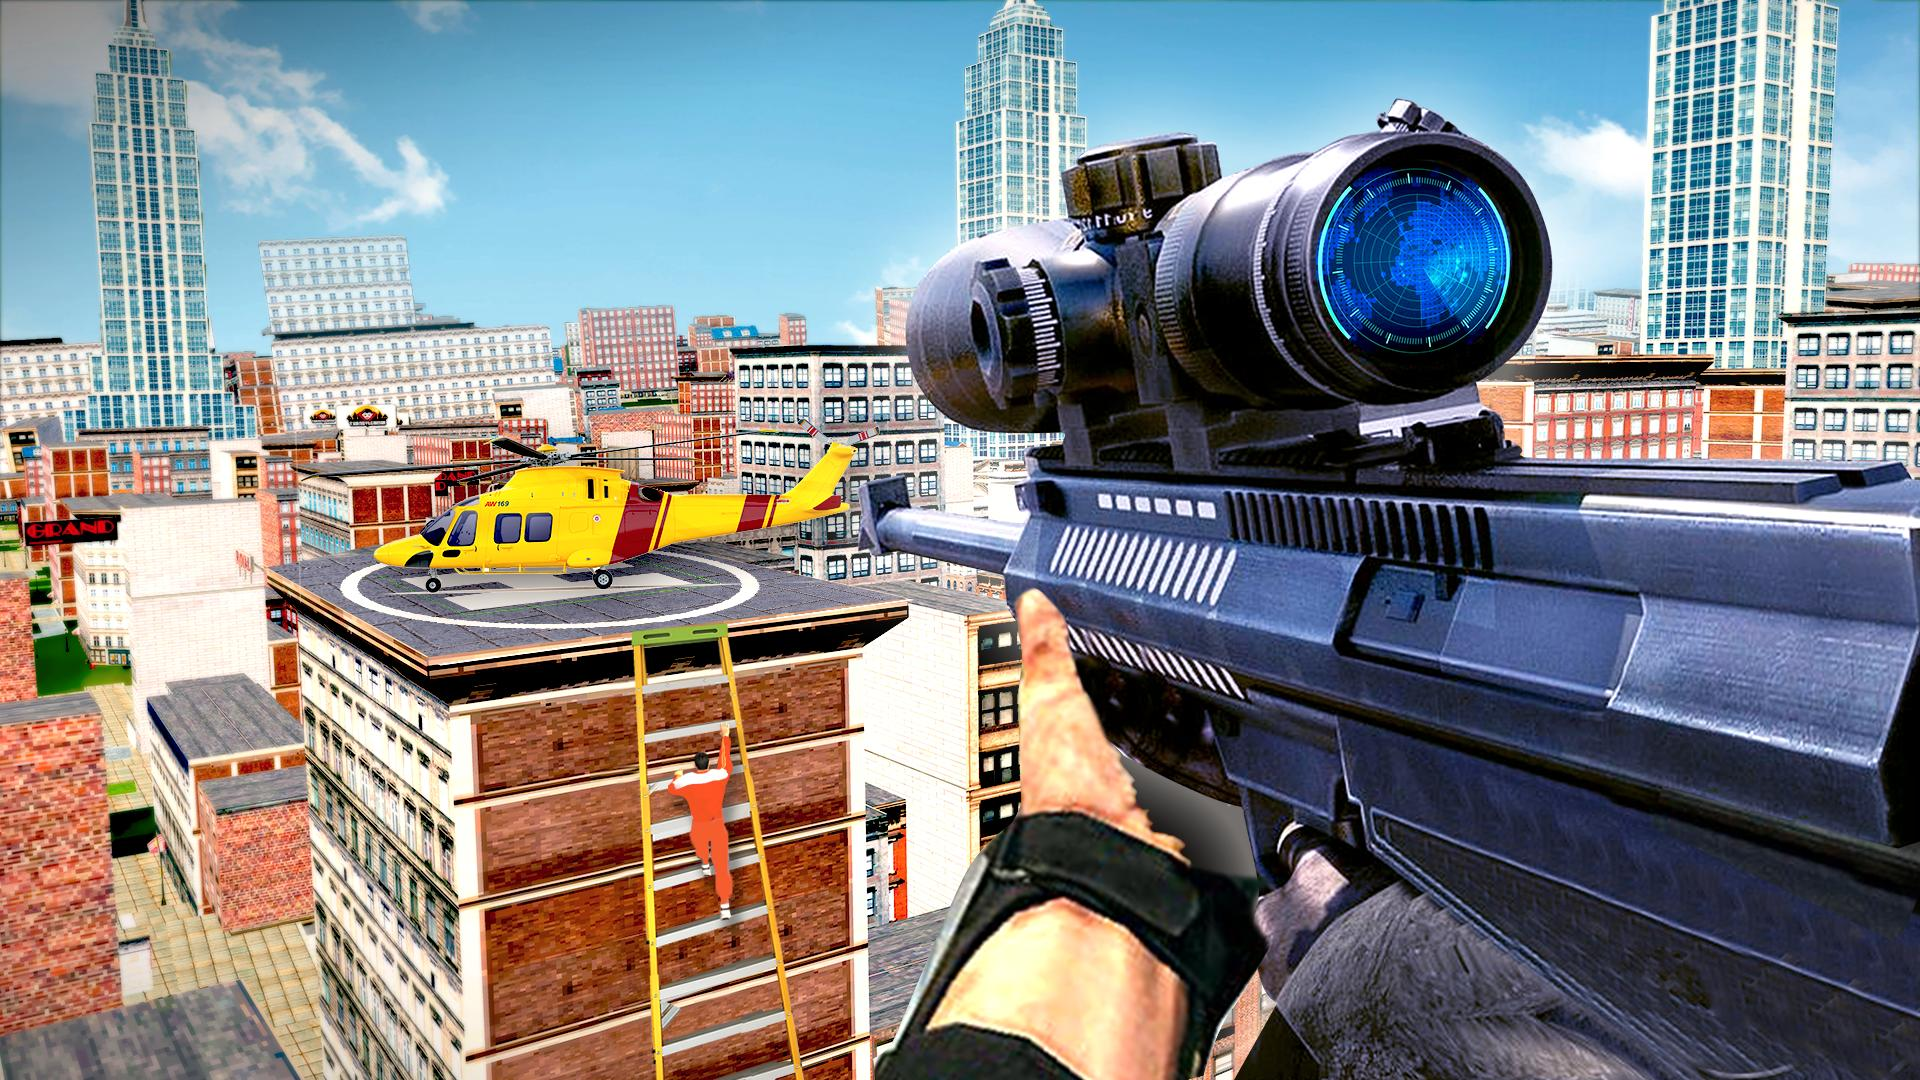 New Sniper 3d Shooting 2019 - Free Sniper Games 1.0 Screenshot 3